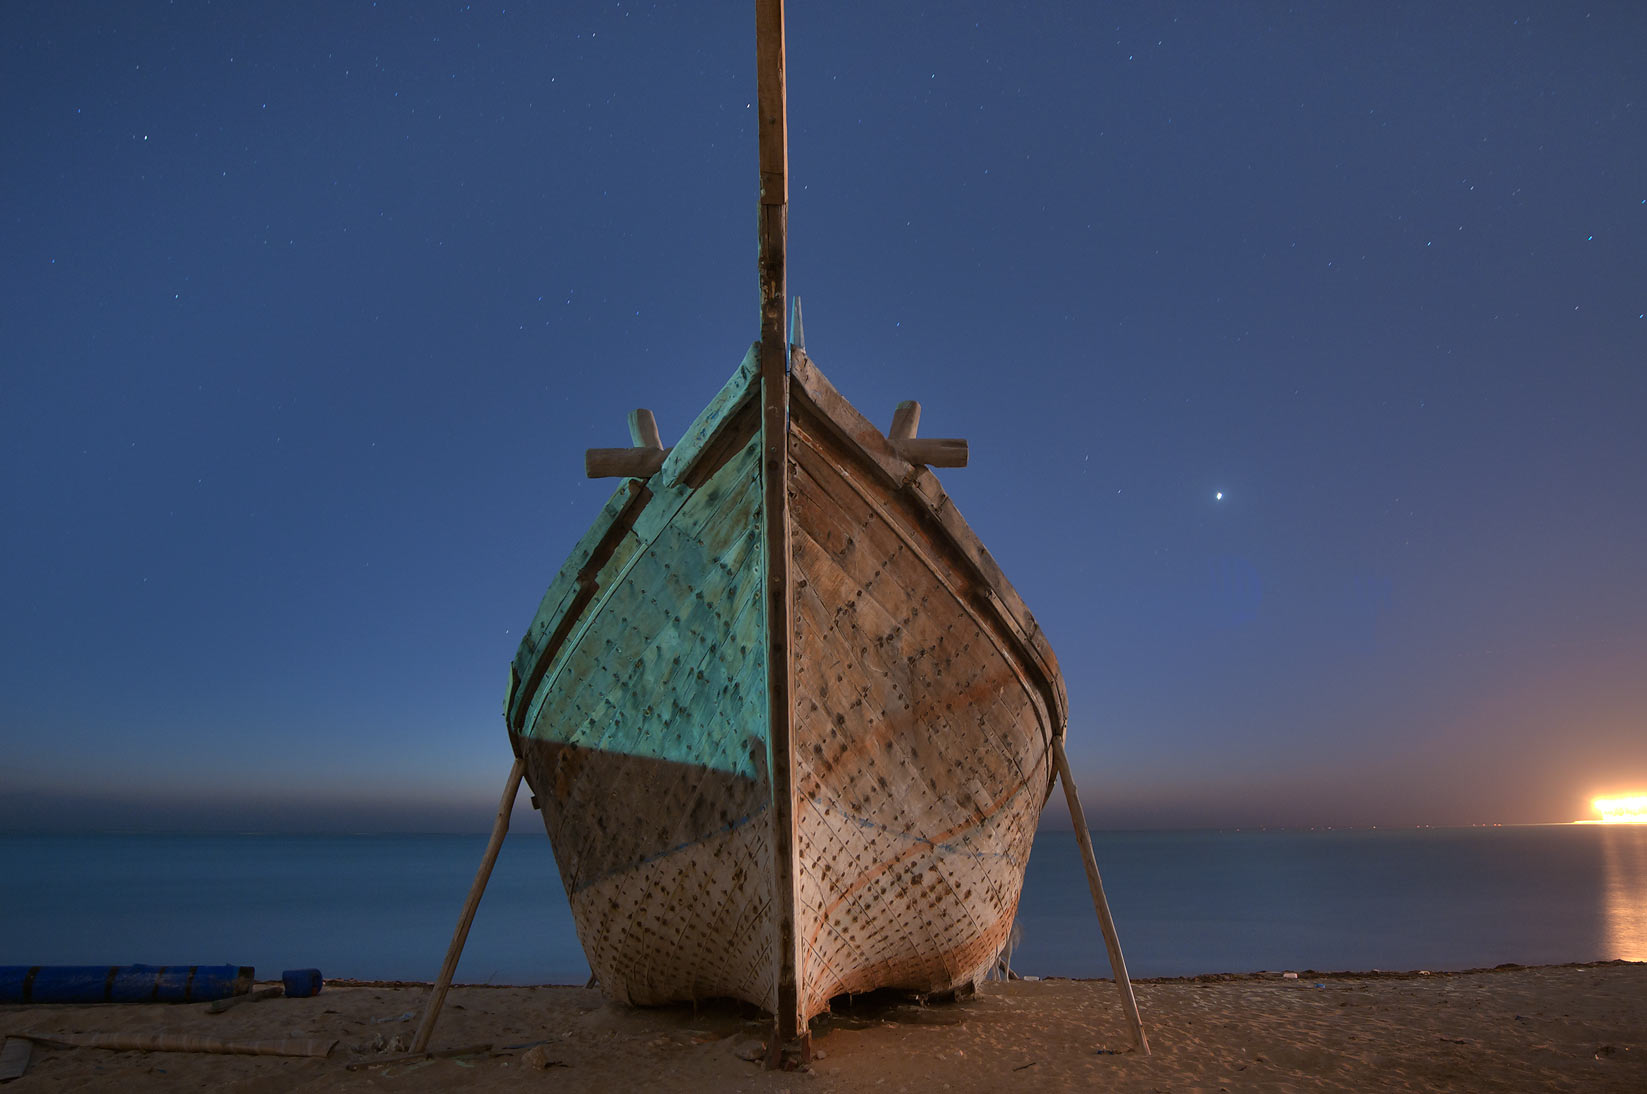 Hull of a beached dhow boat at early morning. Al Wakrah, Qatar